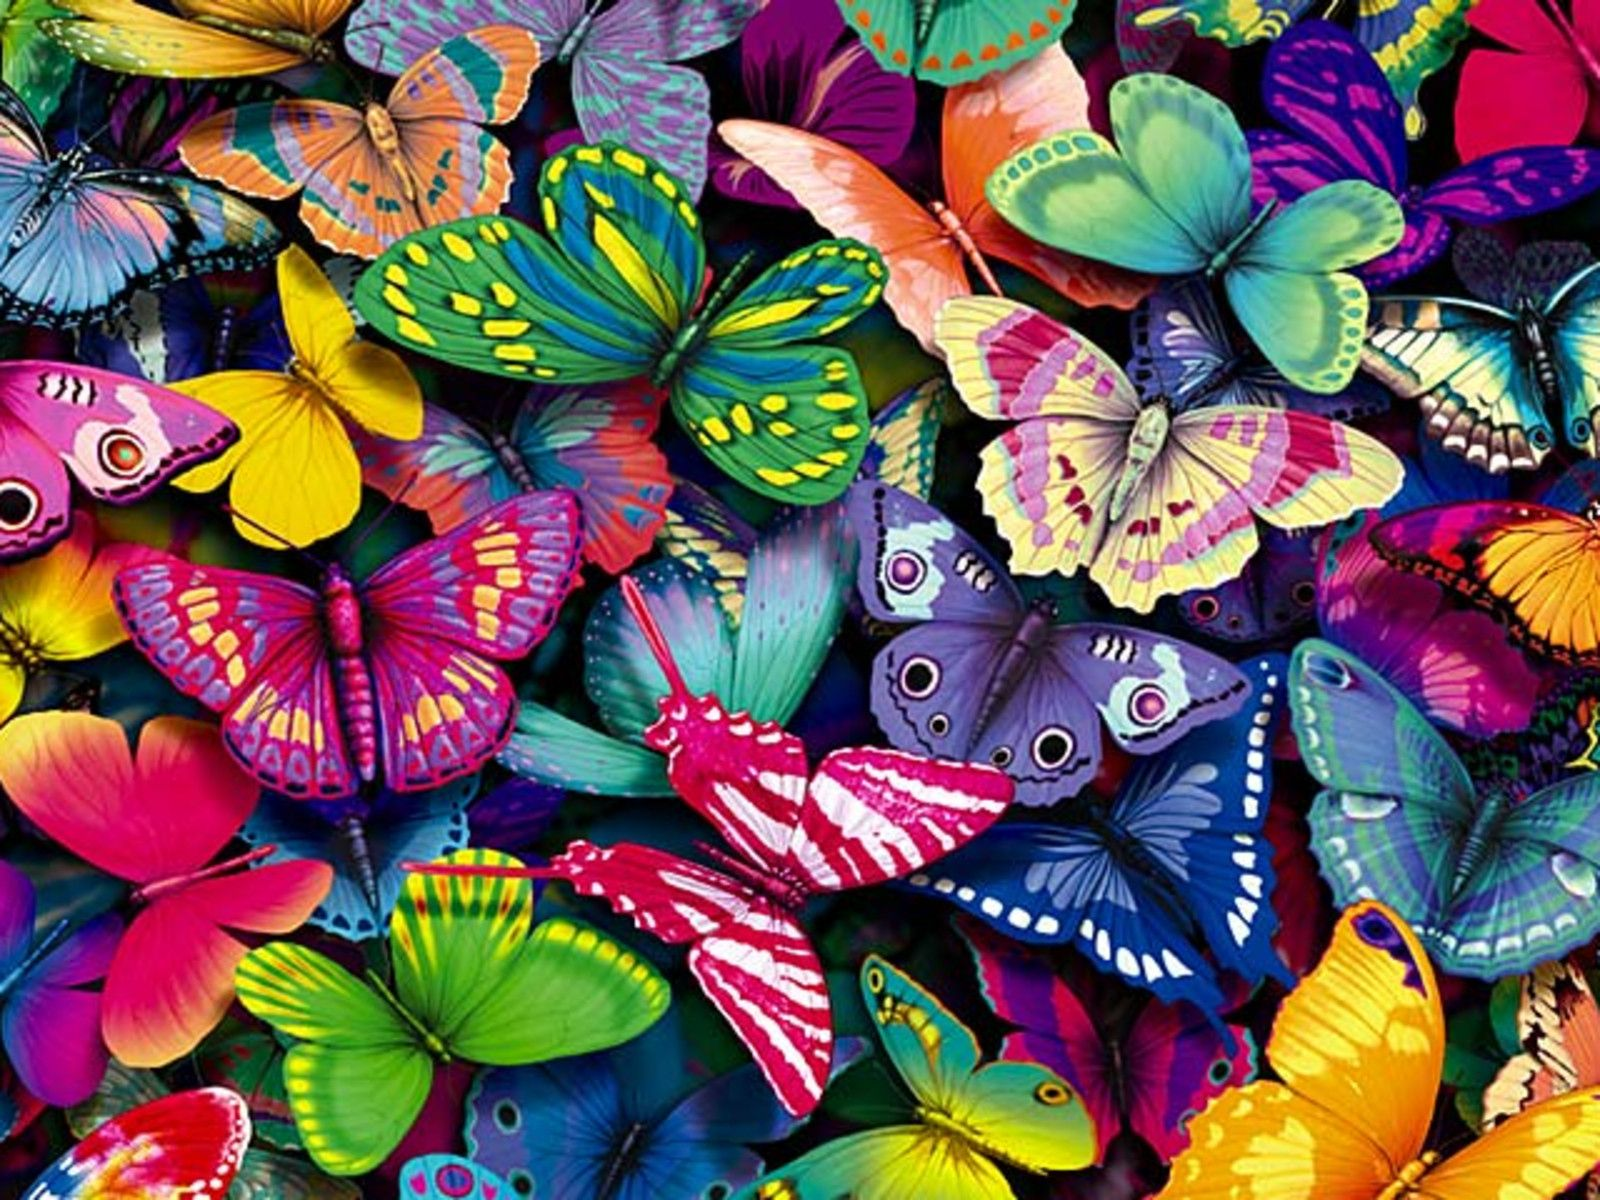 Lots Of Colorful Butterflies Animal Wallpapers Hd Wallpaper Download For Ipad And Iphone Wide Butterfly Background Colorful Butterflies Butterfly Wallpaper